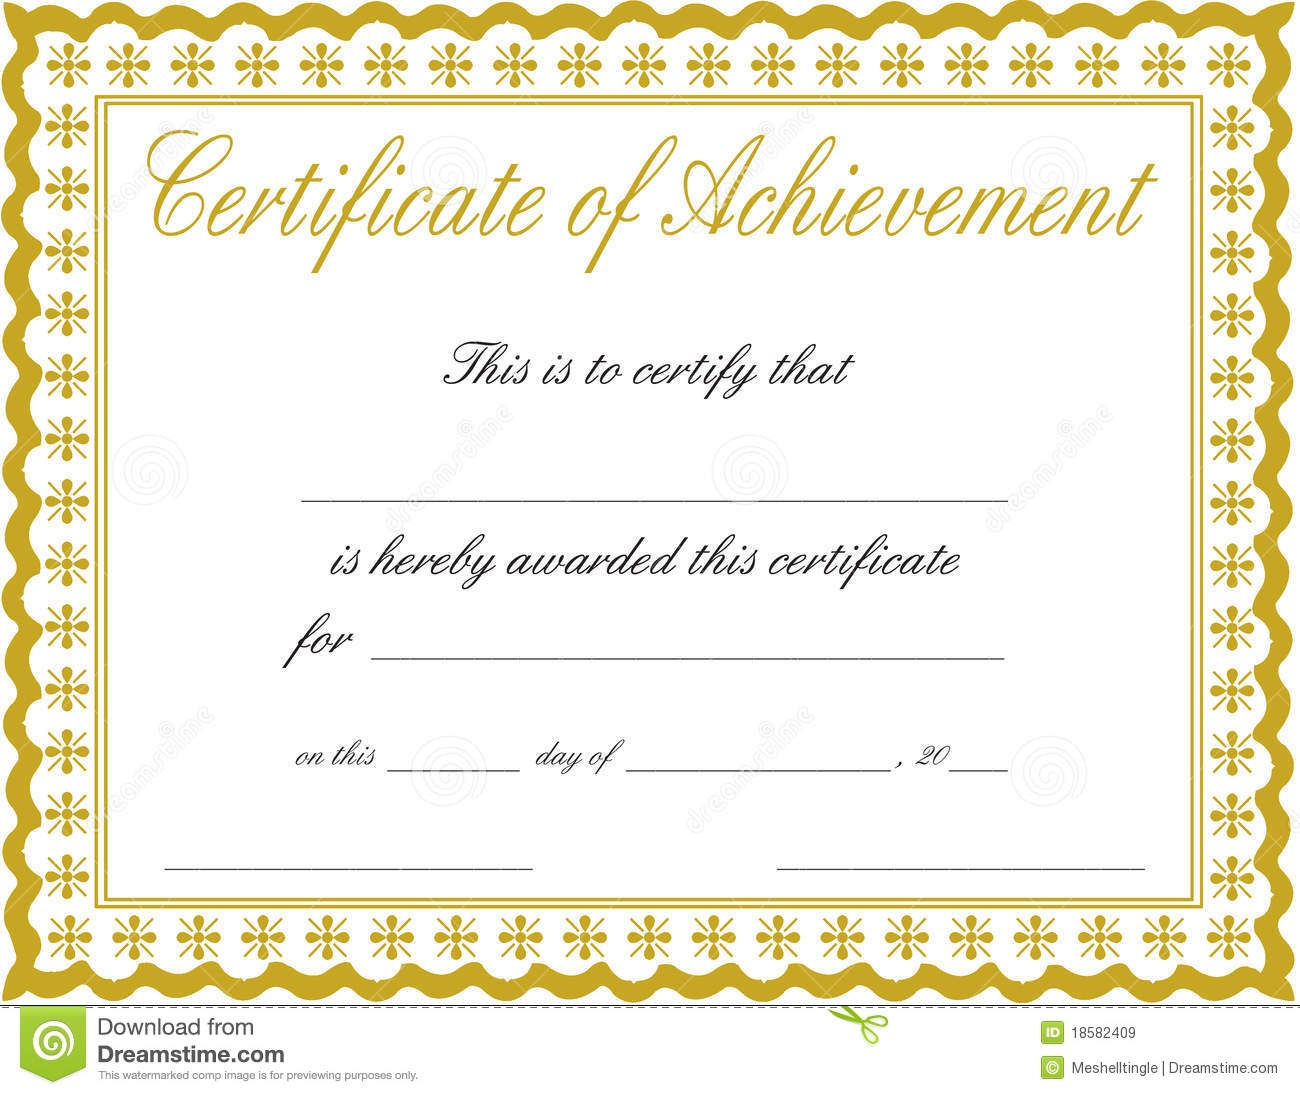 Certificate Of Accomplishment Template Free - Tutlin.psstech.co - Free Printable Softball Certificates